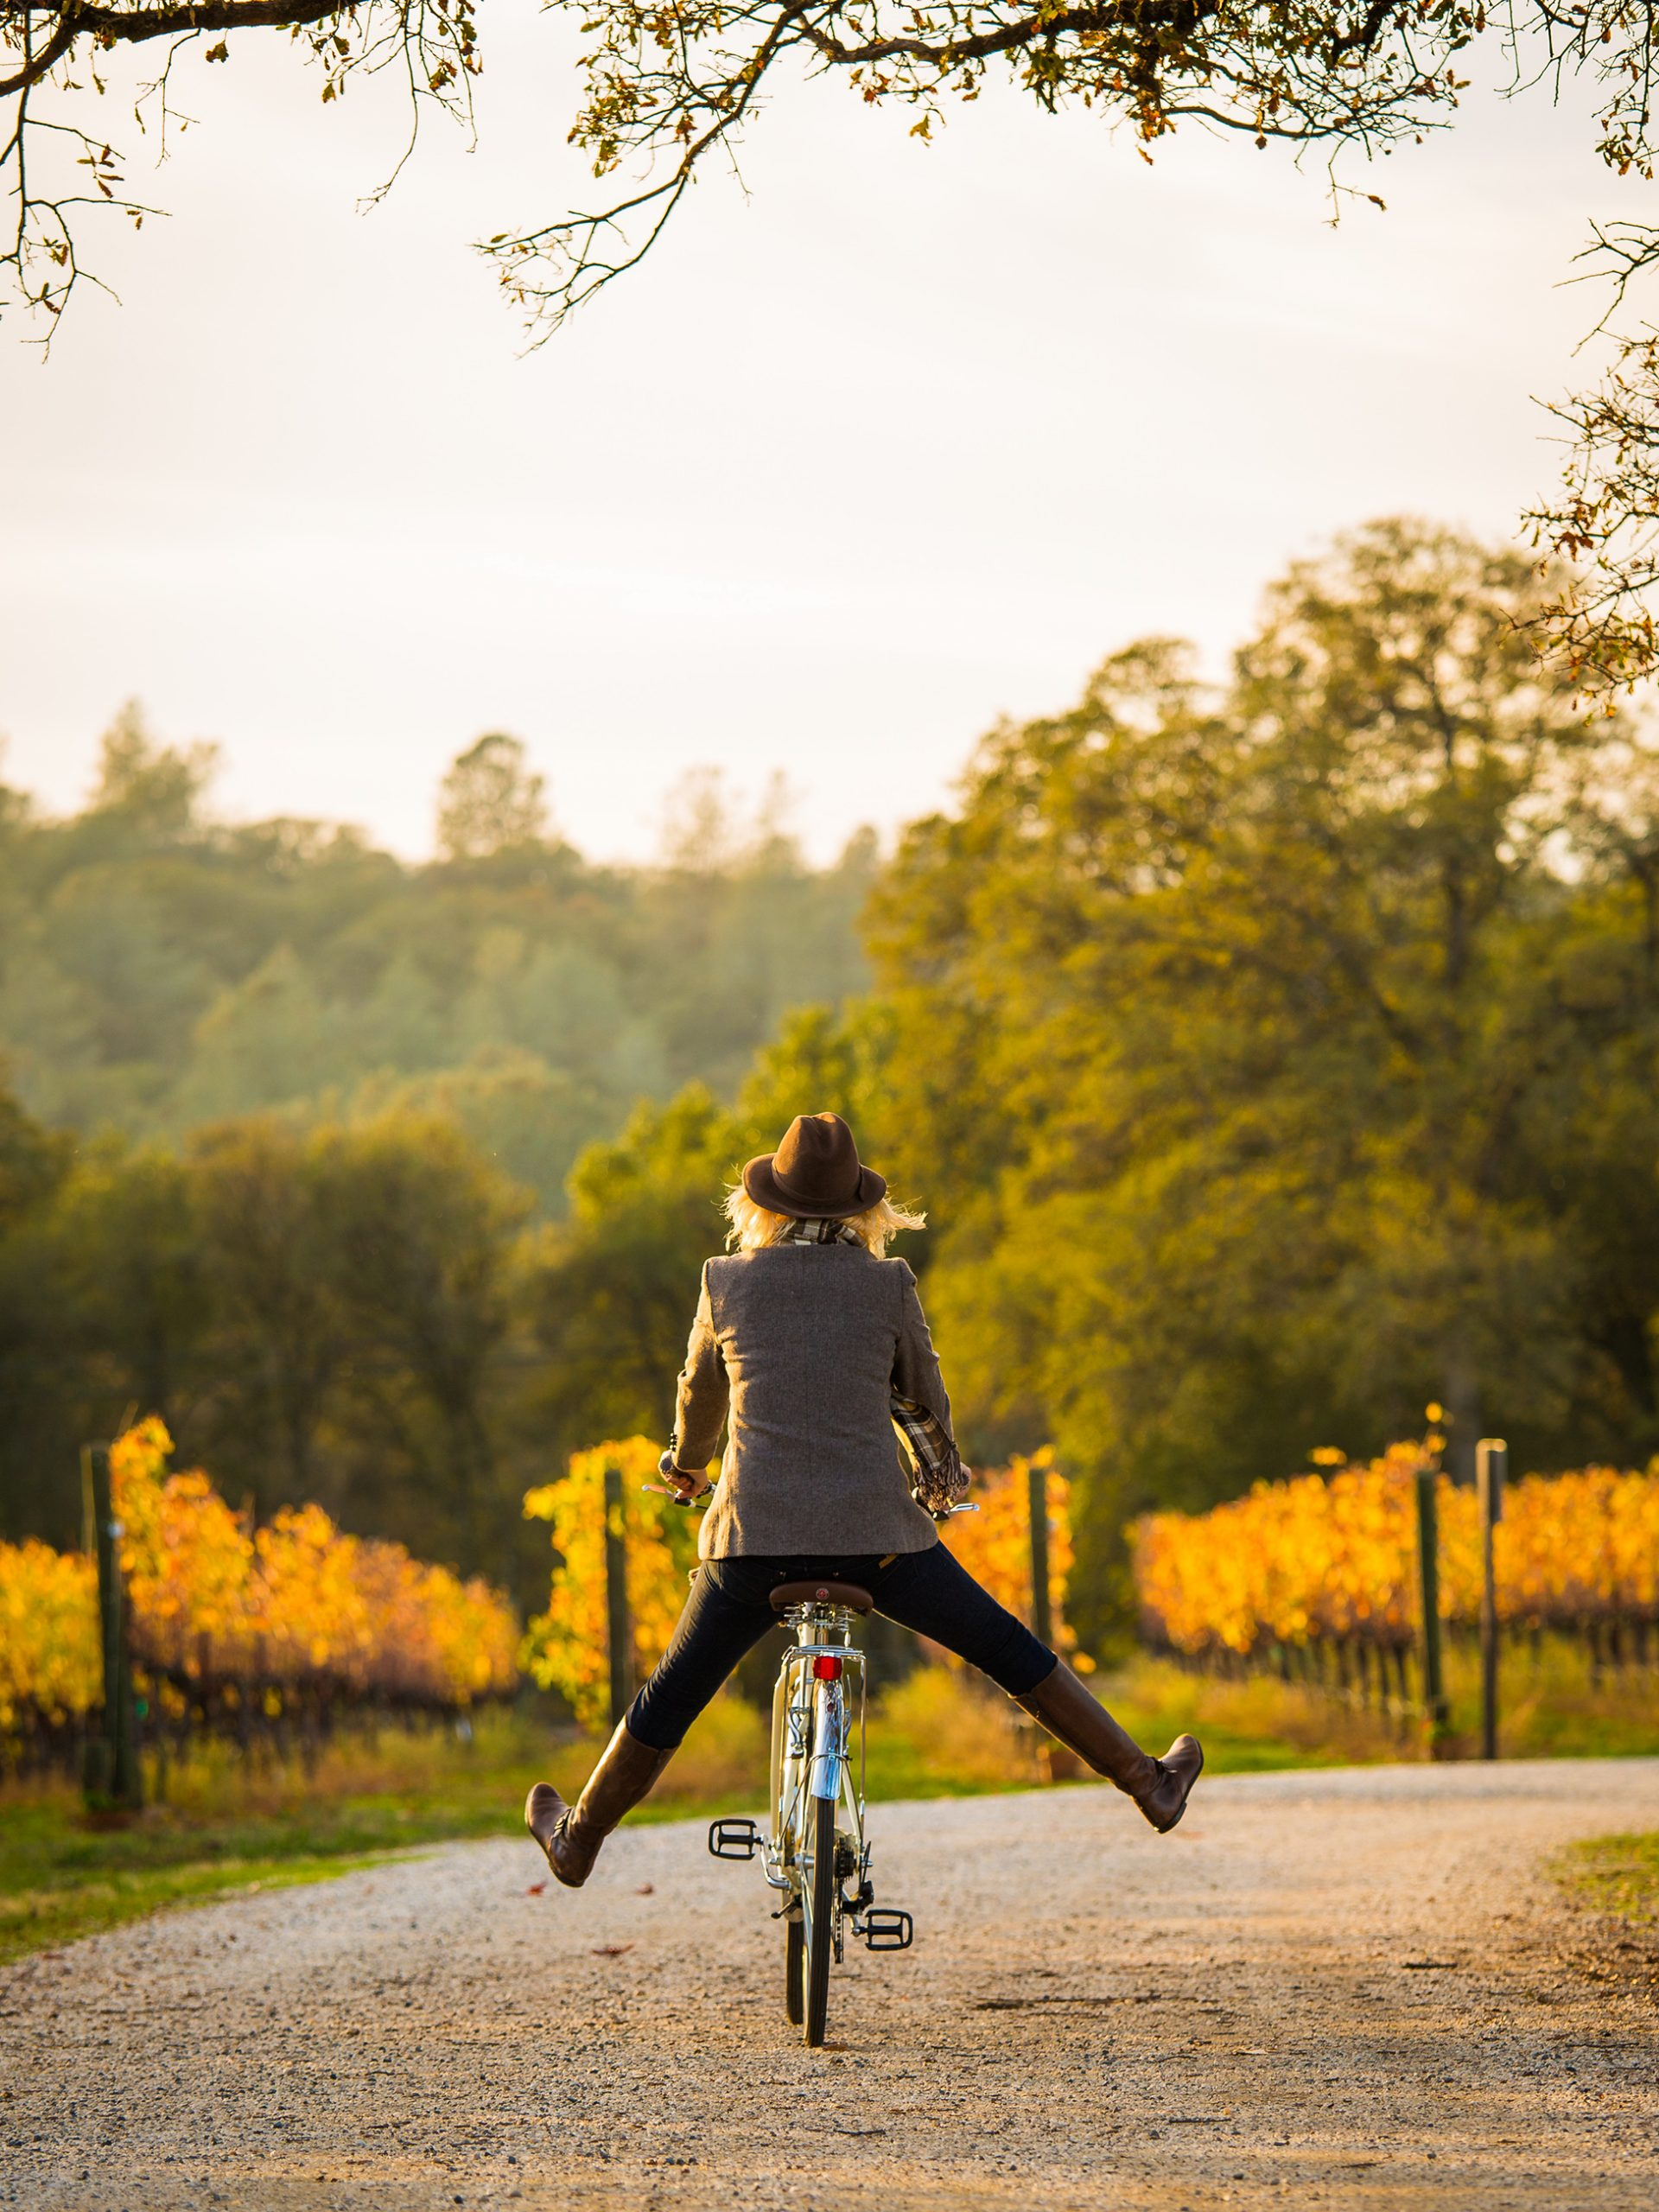 Person on a bike in a vineyard